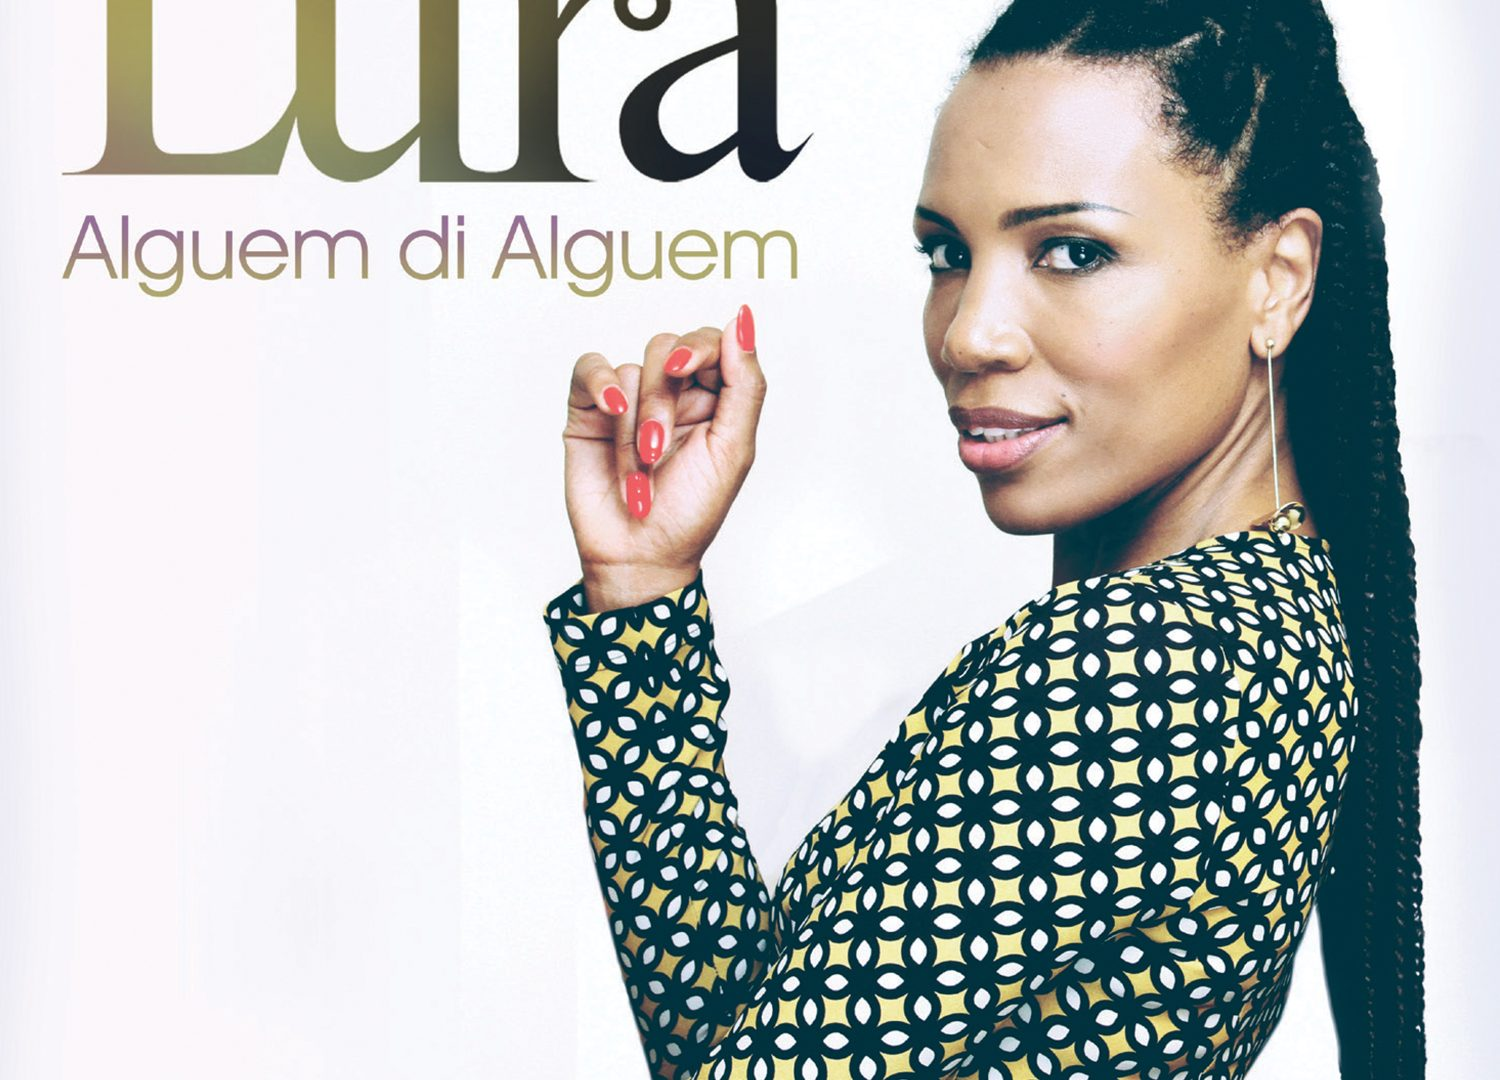 Lura on her latest EP 'Alguém di Alguém' & upcoming album